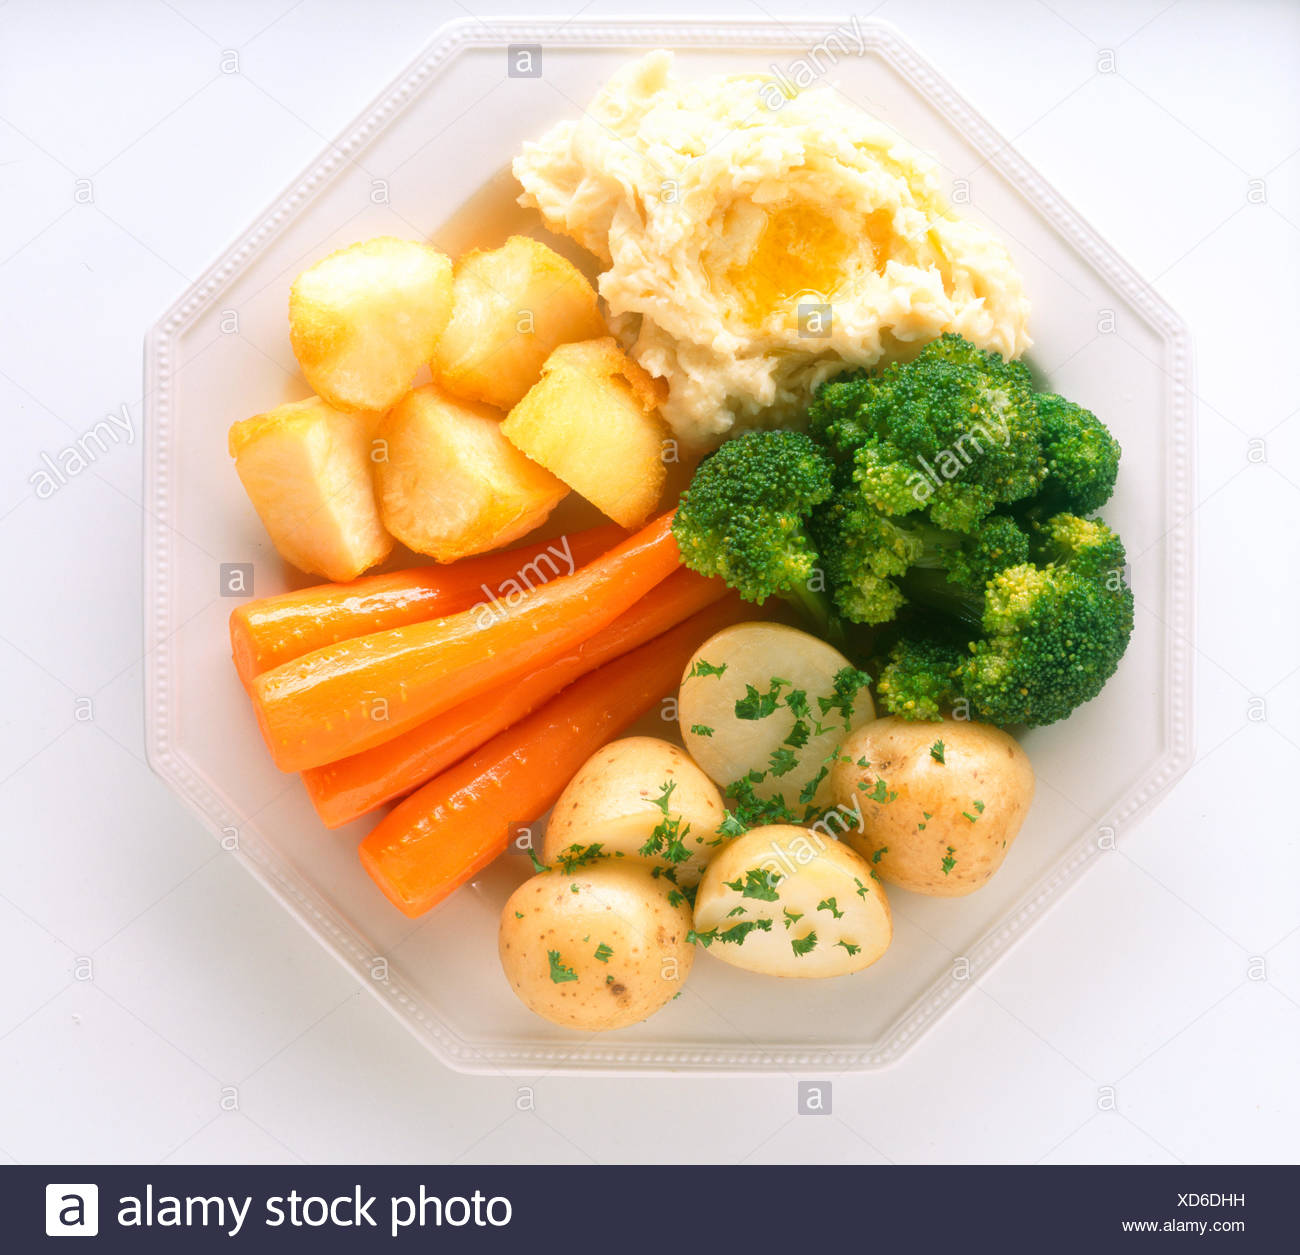 Ireland Vegetable Side Plate With Steamed Broccoli Carrots Roasted Boiled And Mashed Potatoes Stock Photo Alamy